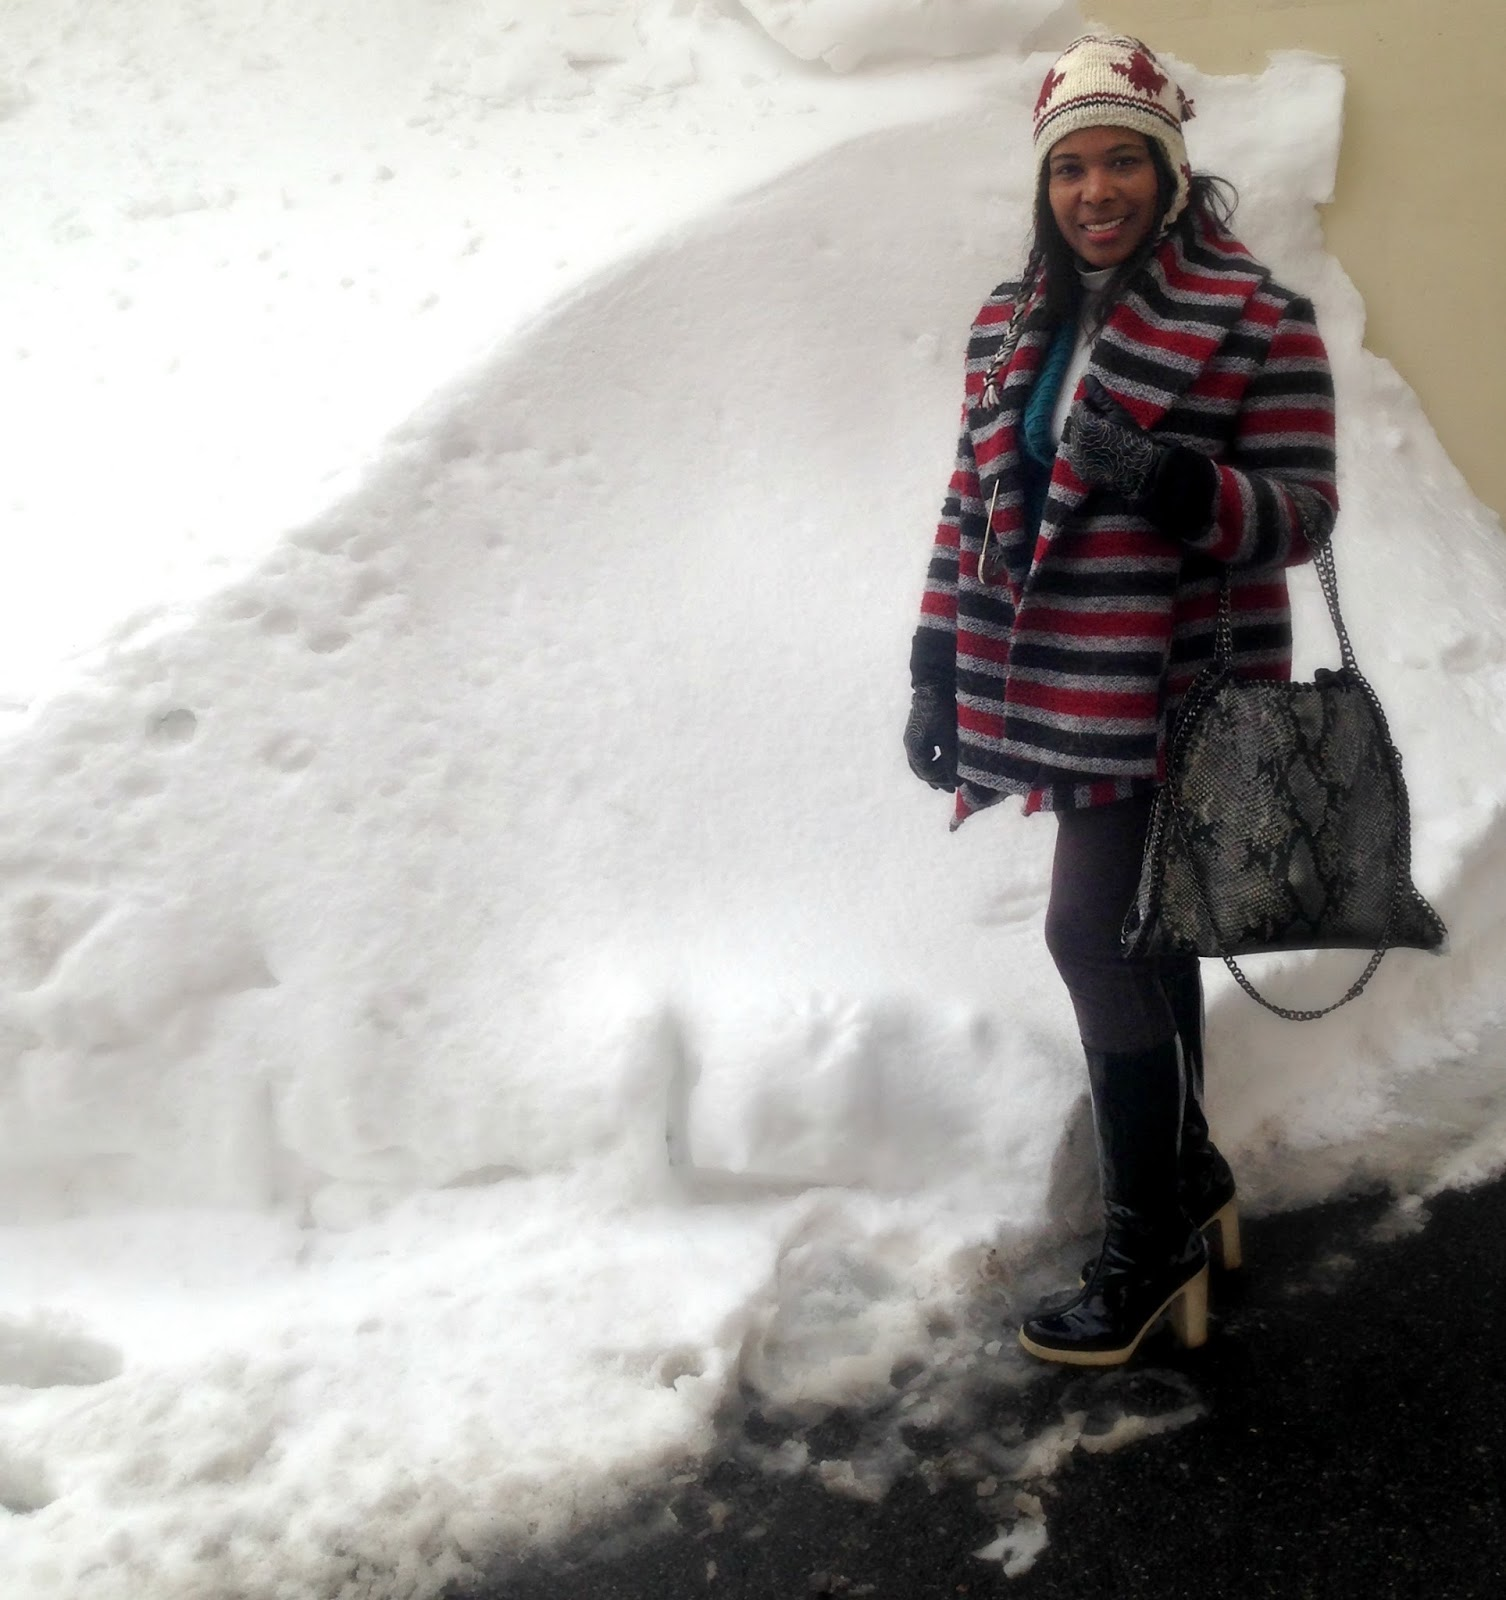 Stella-Mc-Cartney-Tote-Bag-At-Snowmageddon-2016-Snow-Boots